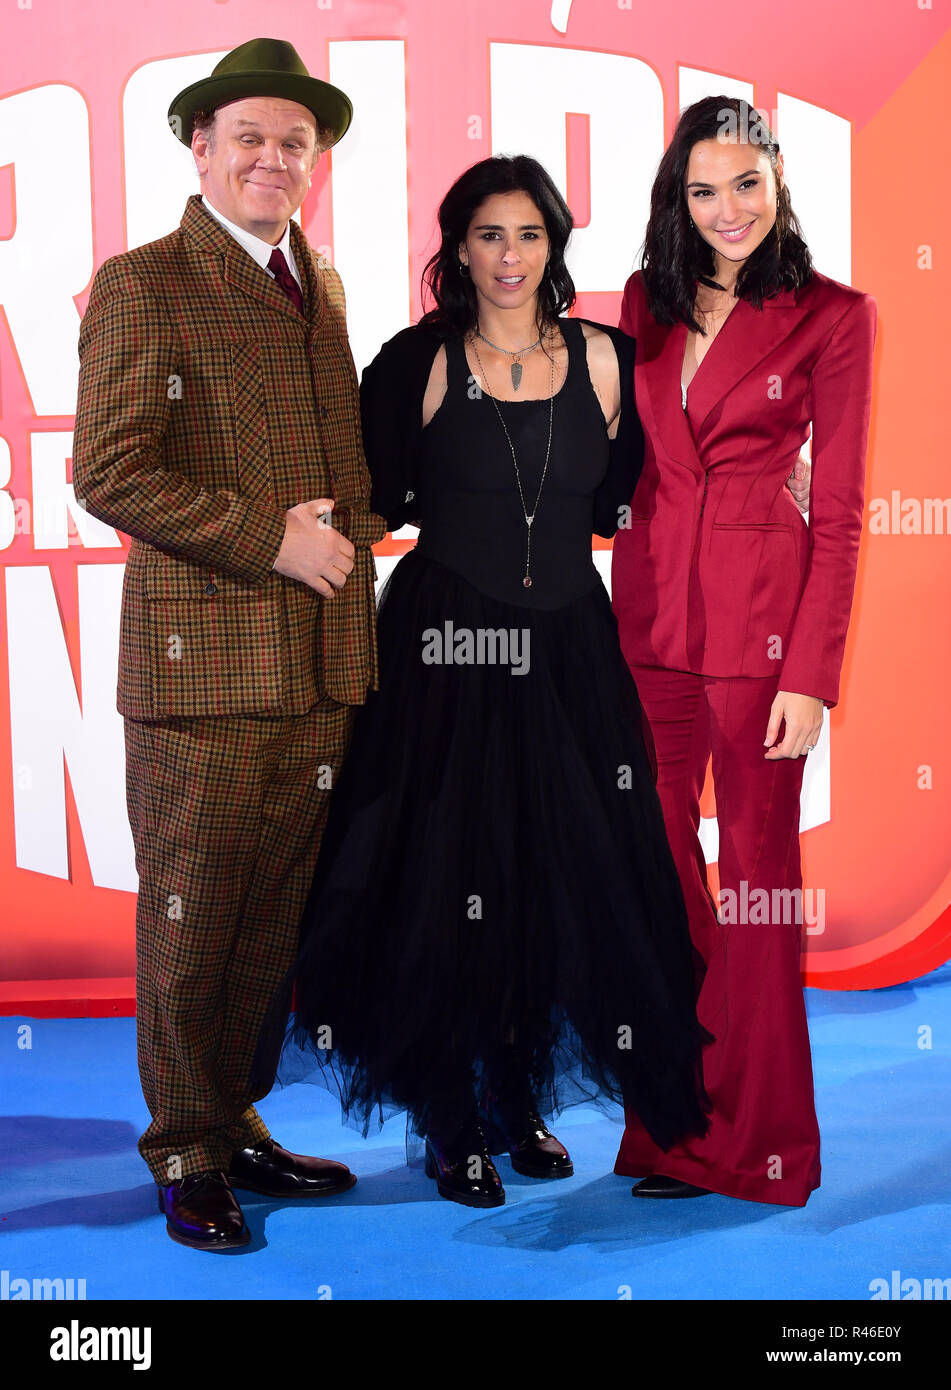 Left To Right John C Reilly Sarah Silverman And Gal Gardot Attending The Ralph Breaks The Internet European Premiere Held At Curzon Mayfair London Stock Photo Alamy